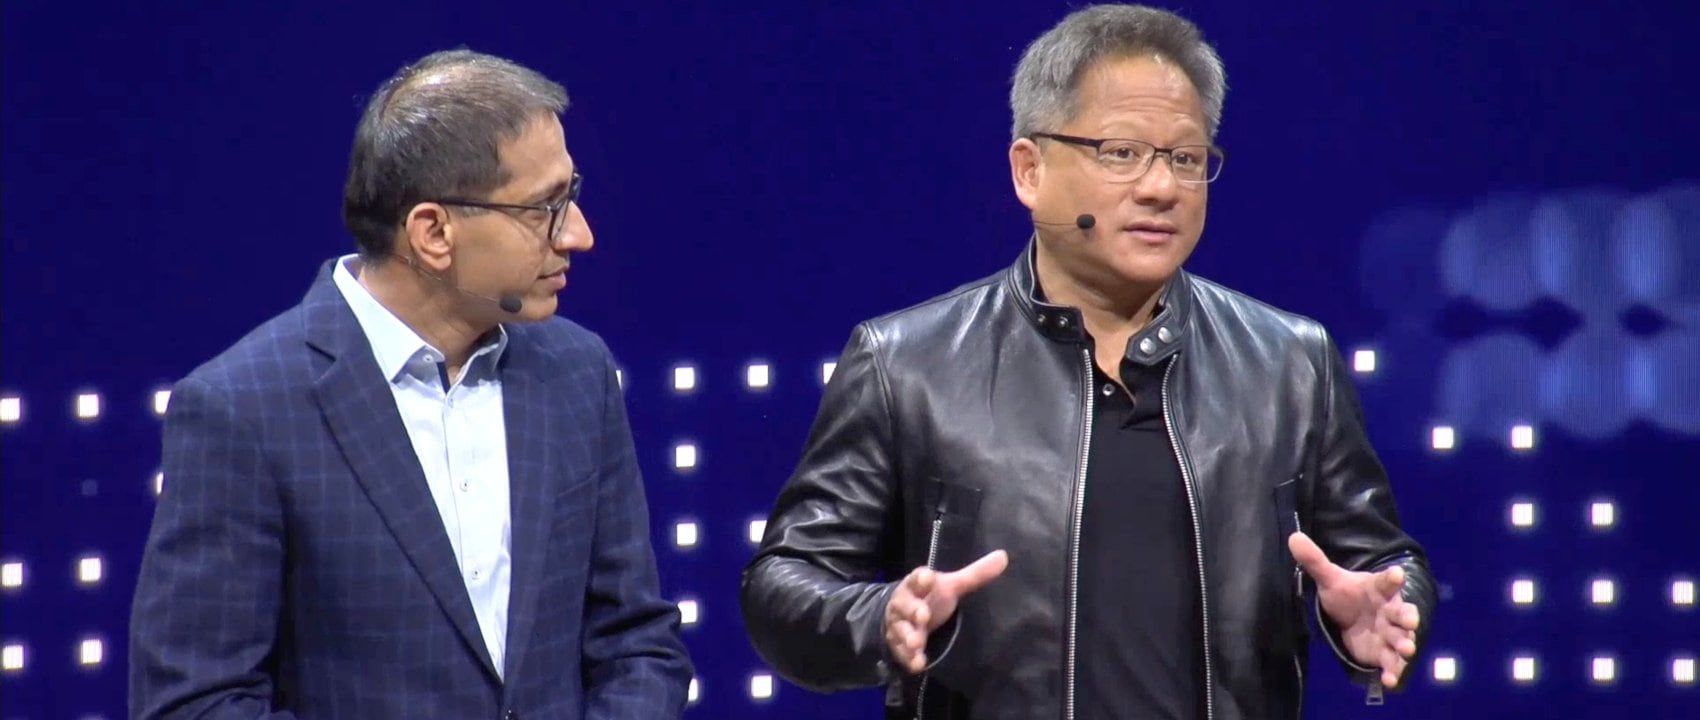 CES 2019 with Sajjad Khan, Member of the Divisional Board of Mercedes-Benz Cars, Head of CASE at Daimler AG, and Jensen Huang, Co-Founder, President & CEO at NVIDIA.